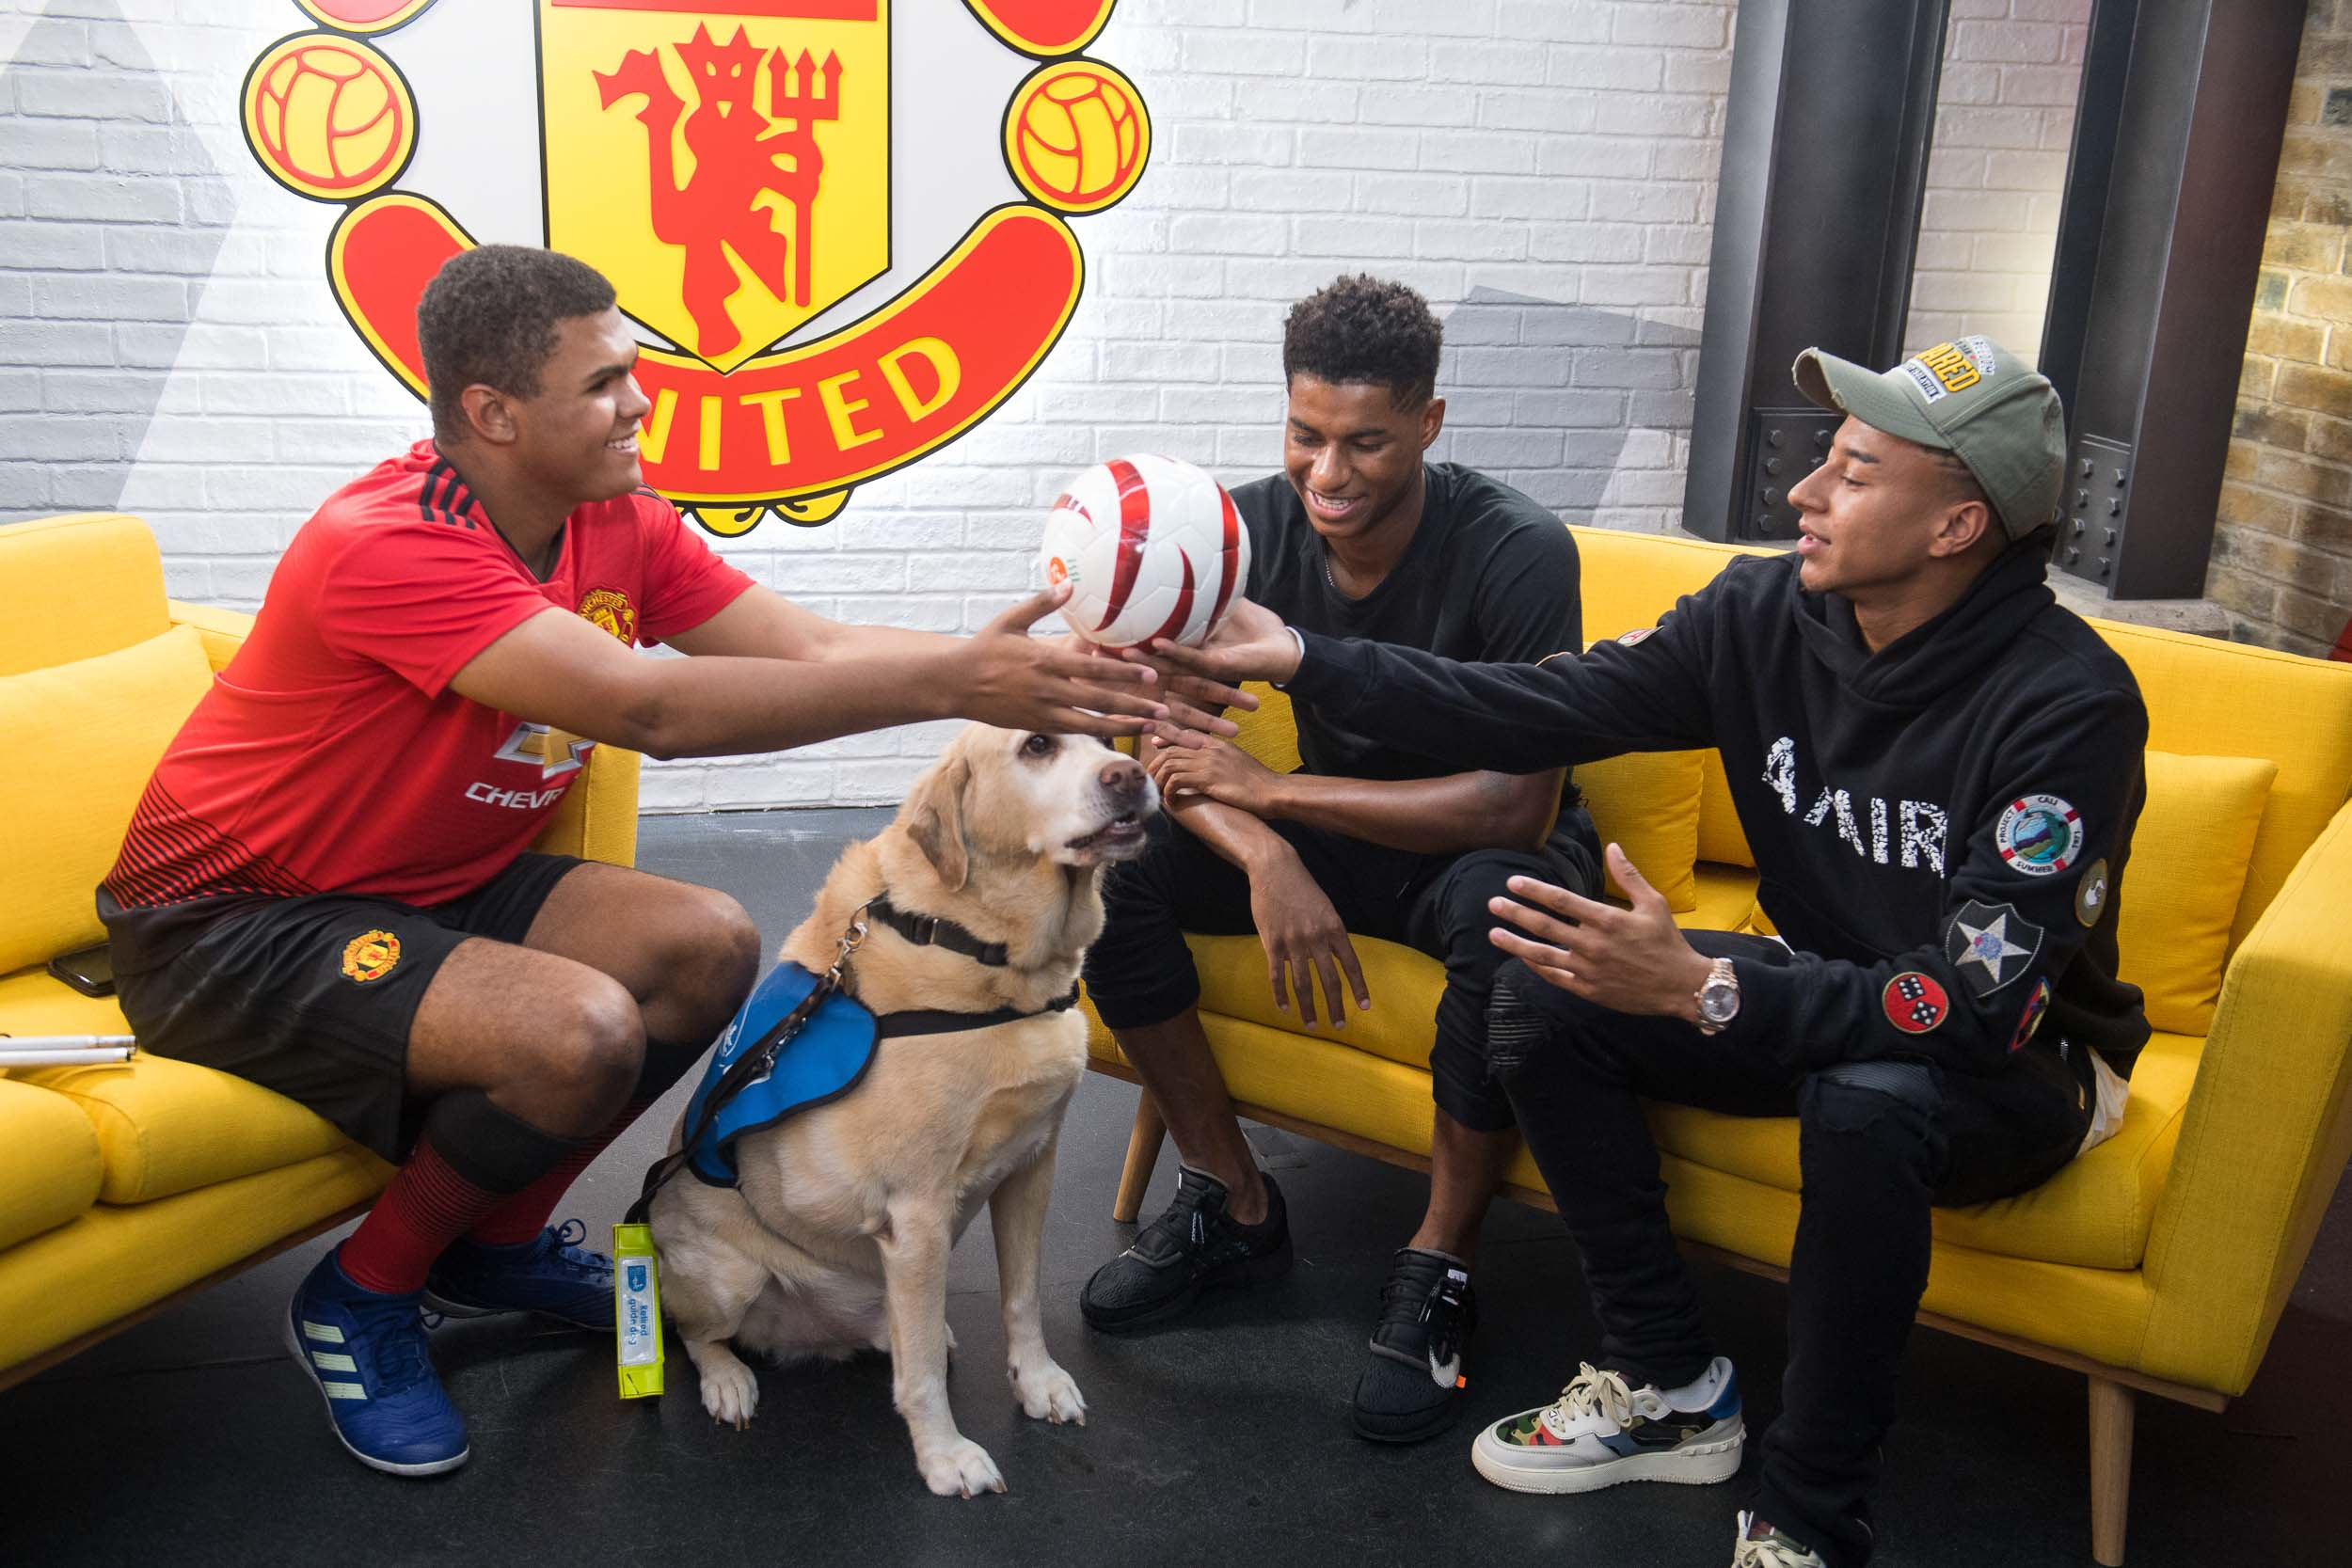 Two professional Manchester united football players meet an amateur player who plays blind football.